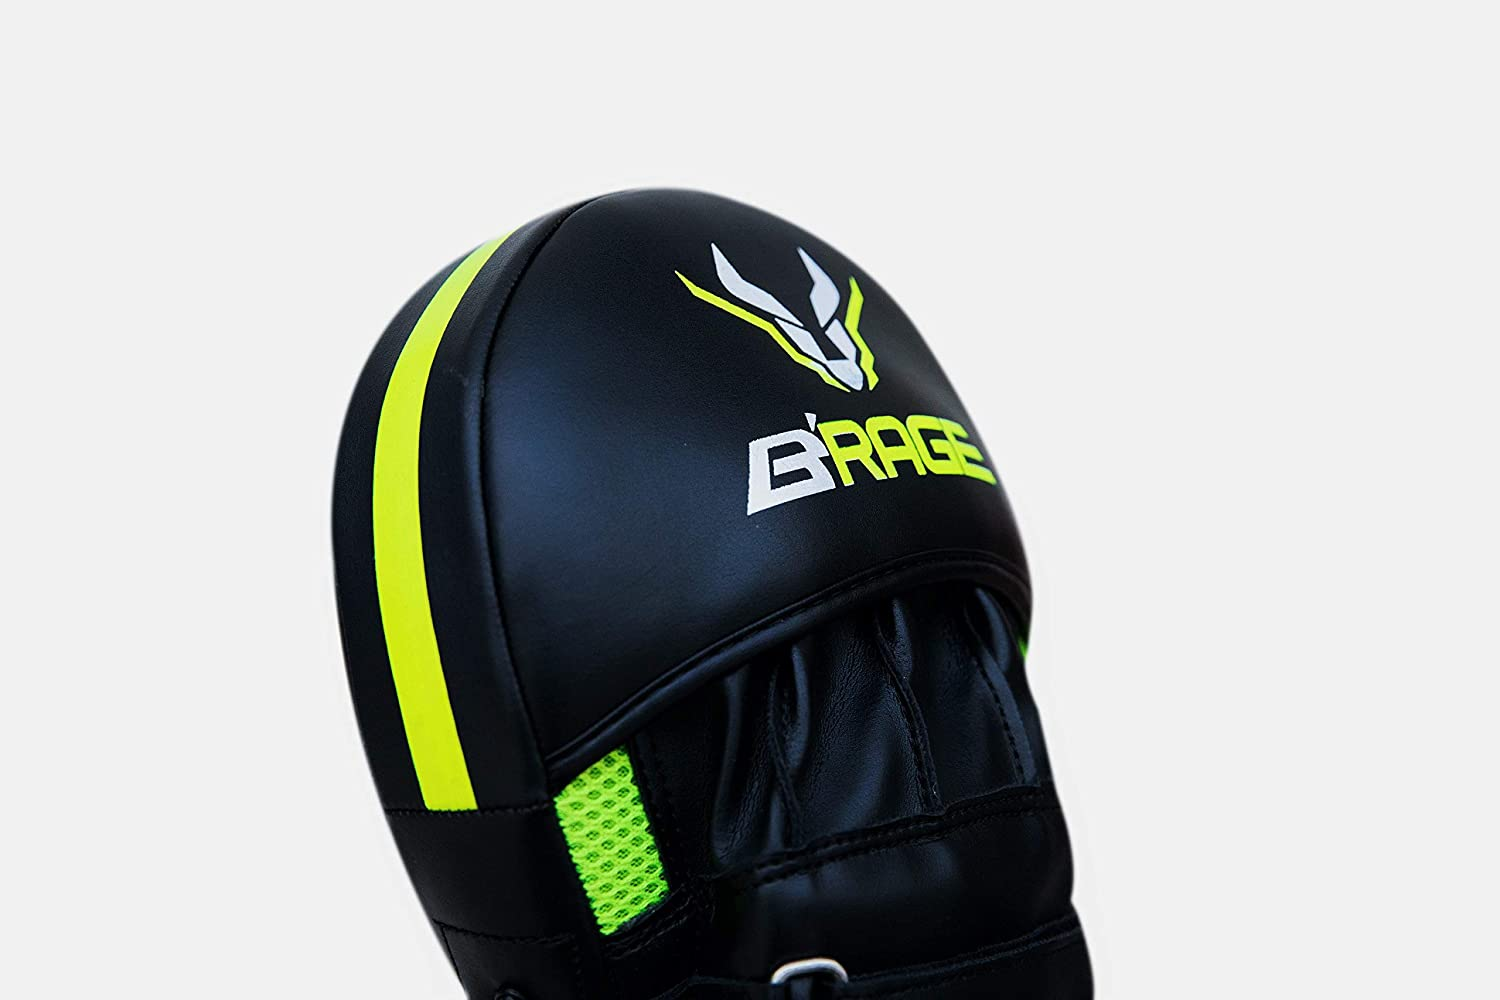 BRAGE-Power of A Raging Bull Martial Arts Pro Impact Curved Punching Mitts Kickboxing Sparring Training Fighting Gear Muai Thai MMA Equipment Strike-Target-Focus-Hand Pads